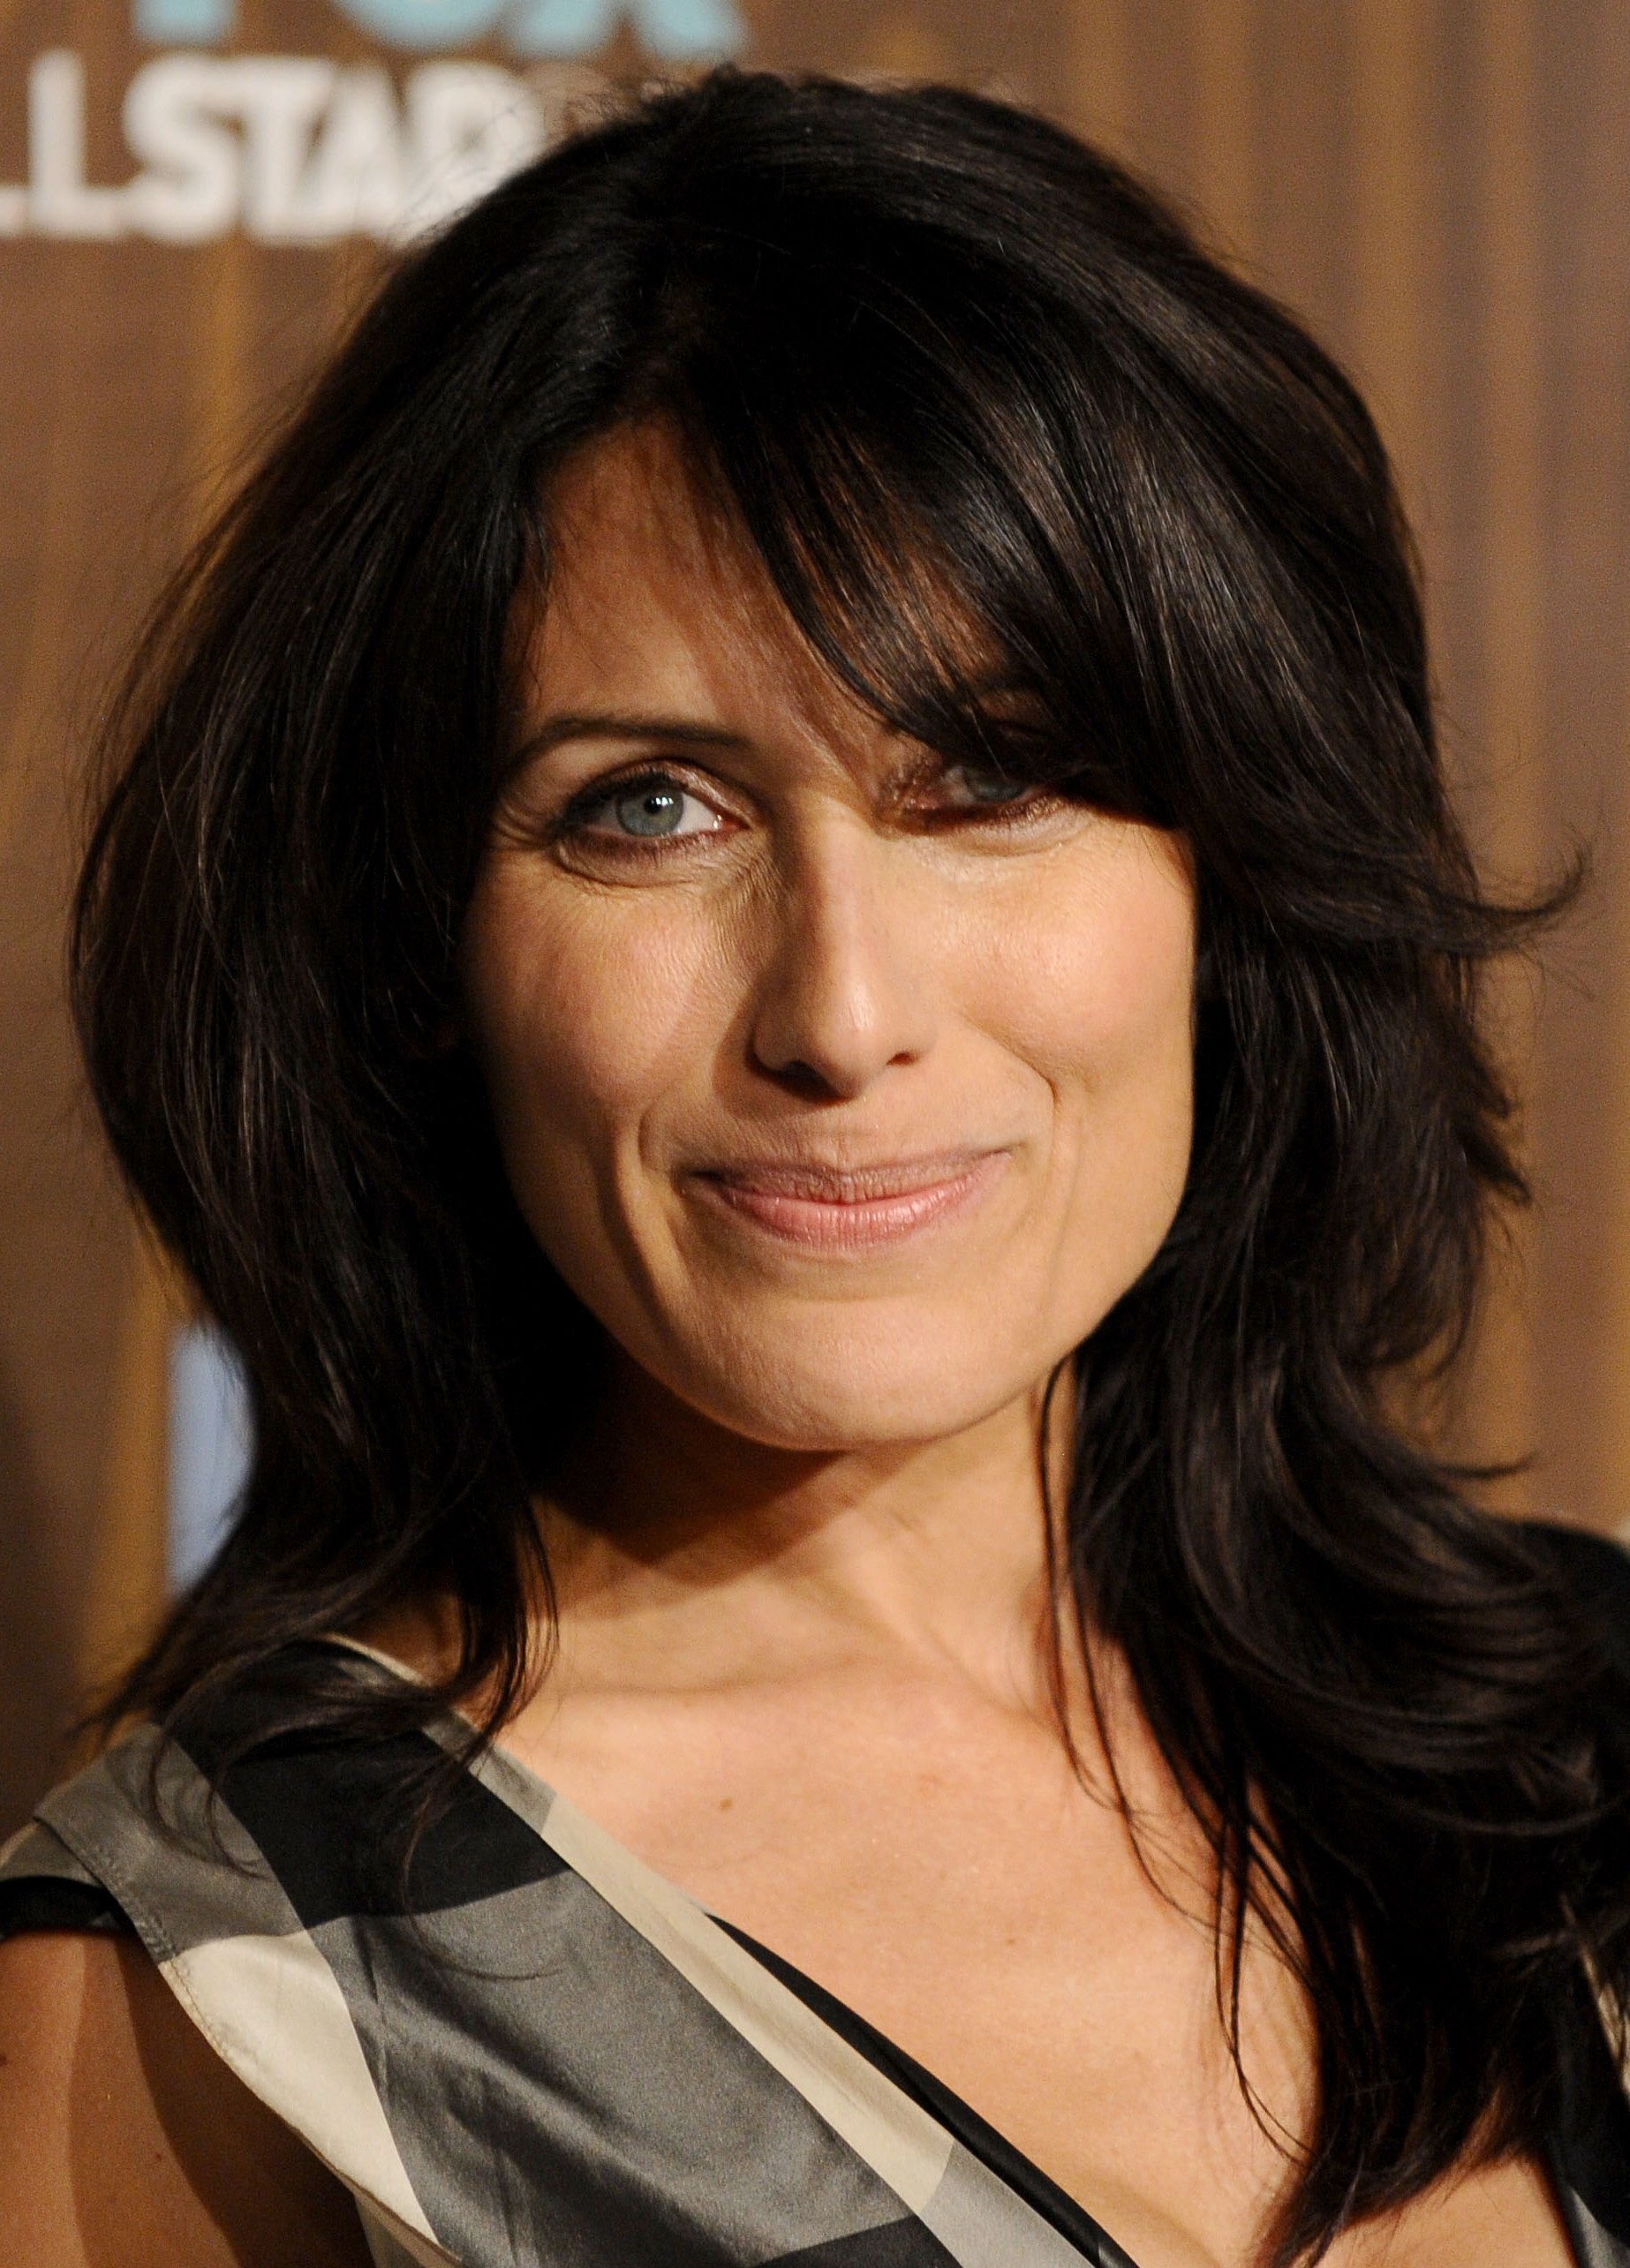 lisa edelstein dating Lisa edelstein brasil 1,484 likes 6 talking about this fã clube nº 1 da atriz norte-americana lisa edelstein no brasil / number 1 brazilian fan club.